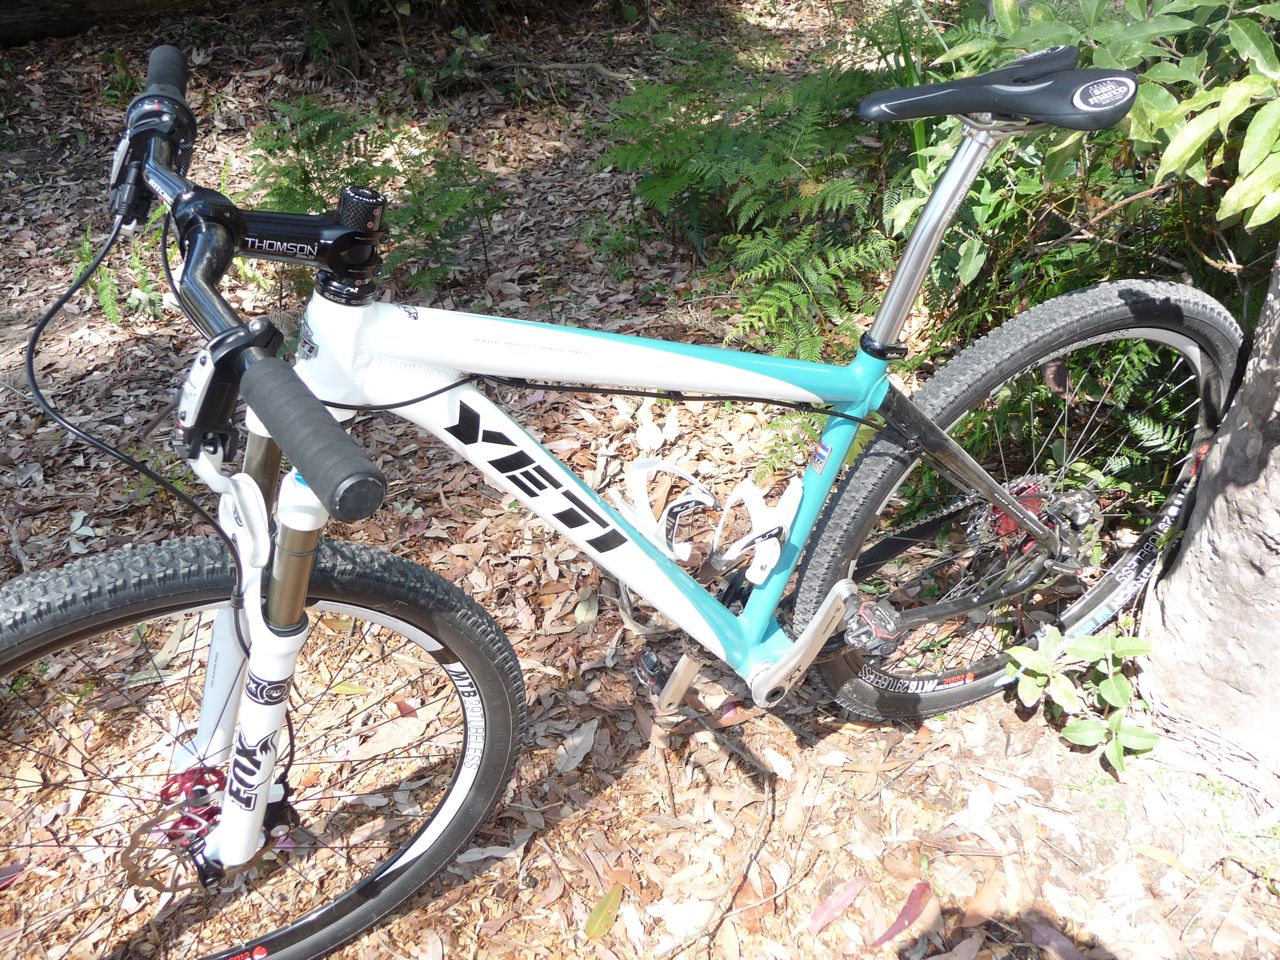 Can We Start a New Post Pictures of your 29er Thread?-ytb-left-side.jpg